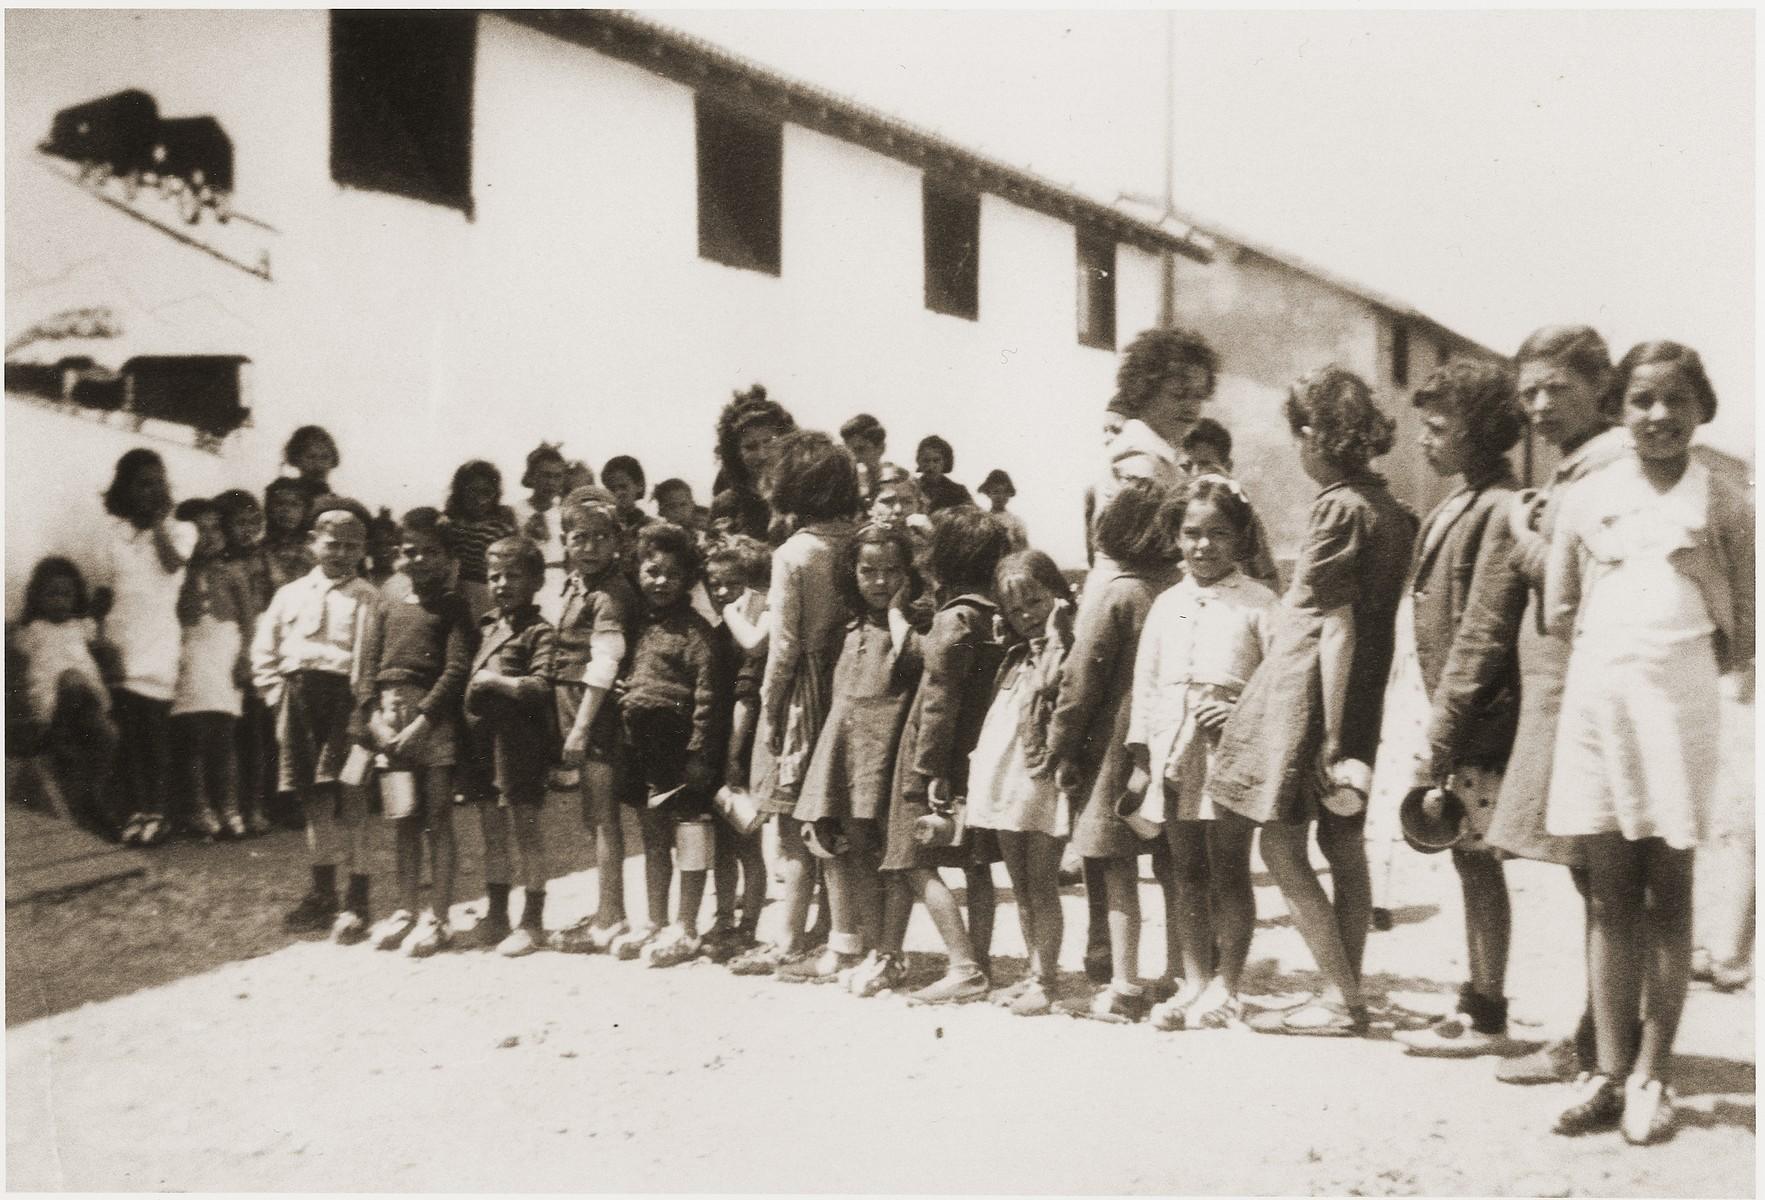 Children wait for a meal at the Secours Suisse barracks.